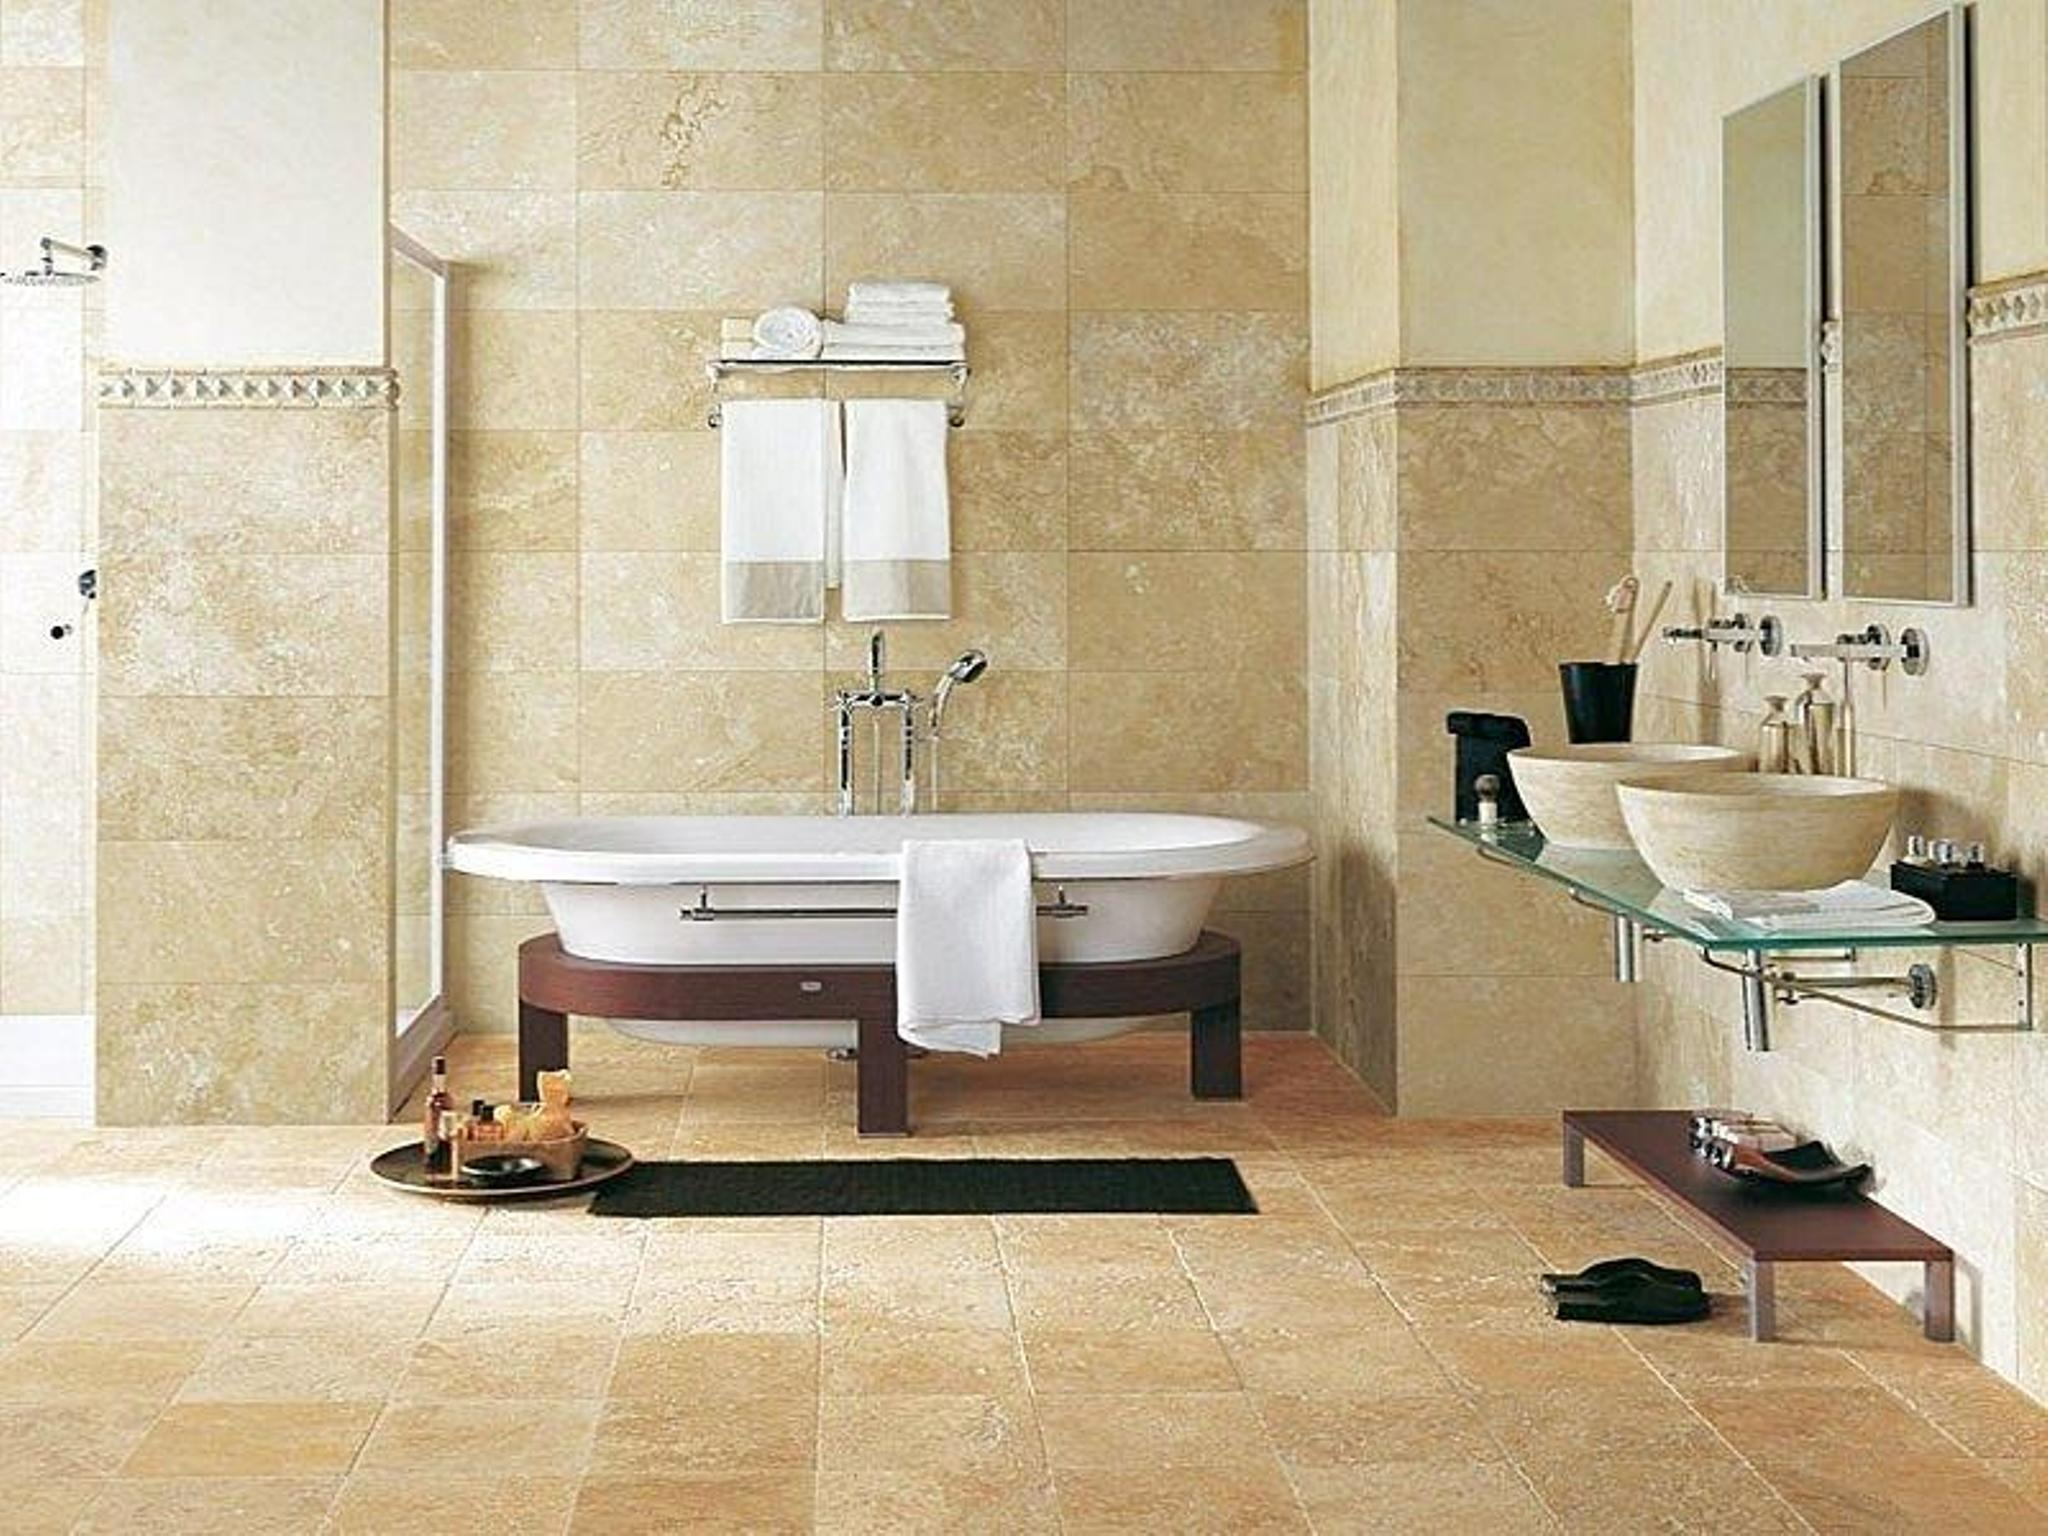 Travertine Tile Designs 20 pictures and ideas of travertine tile designs for bathrooms